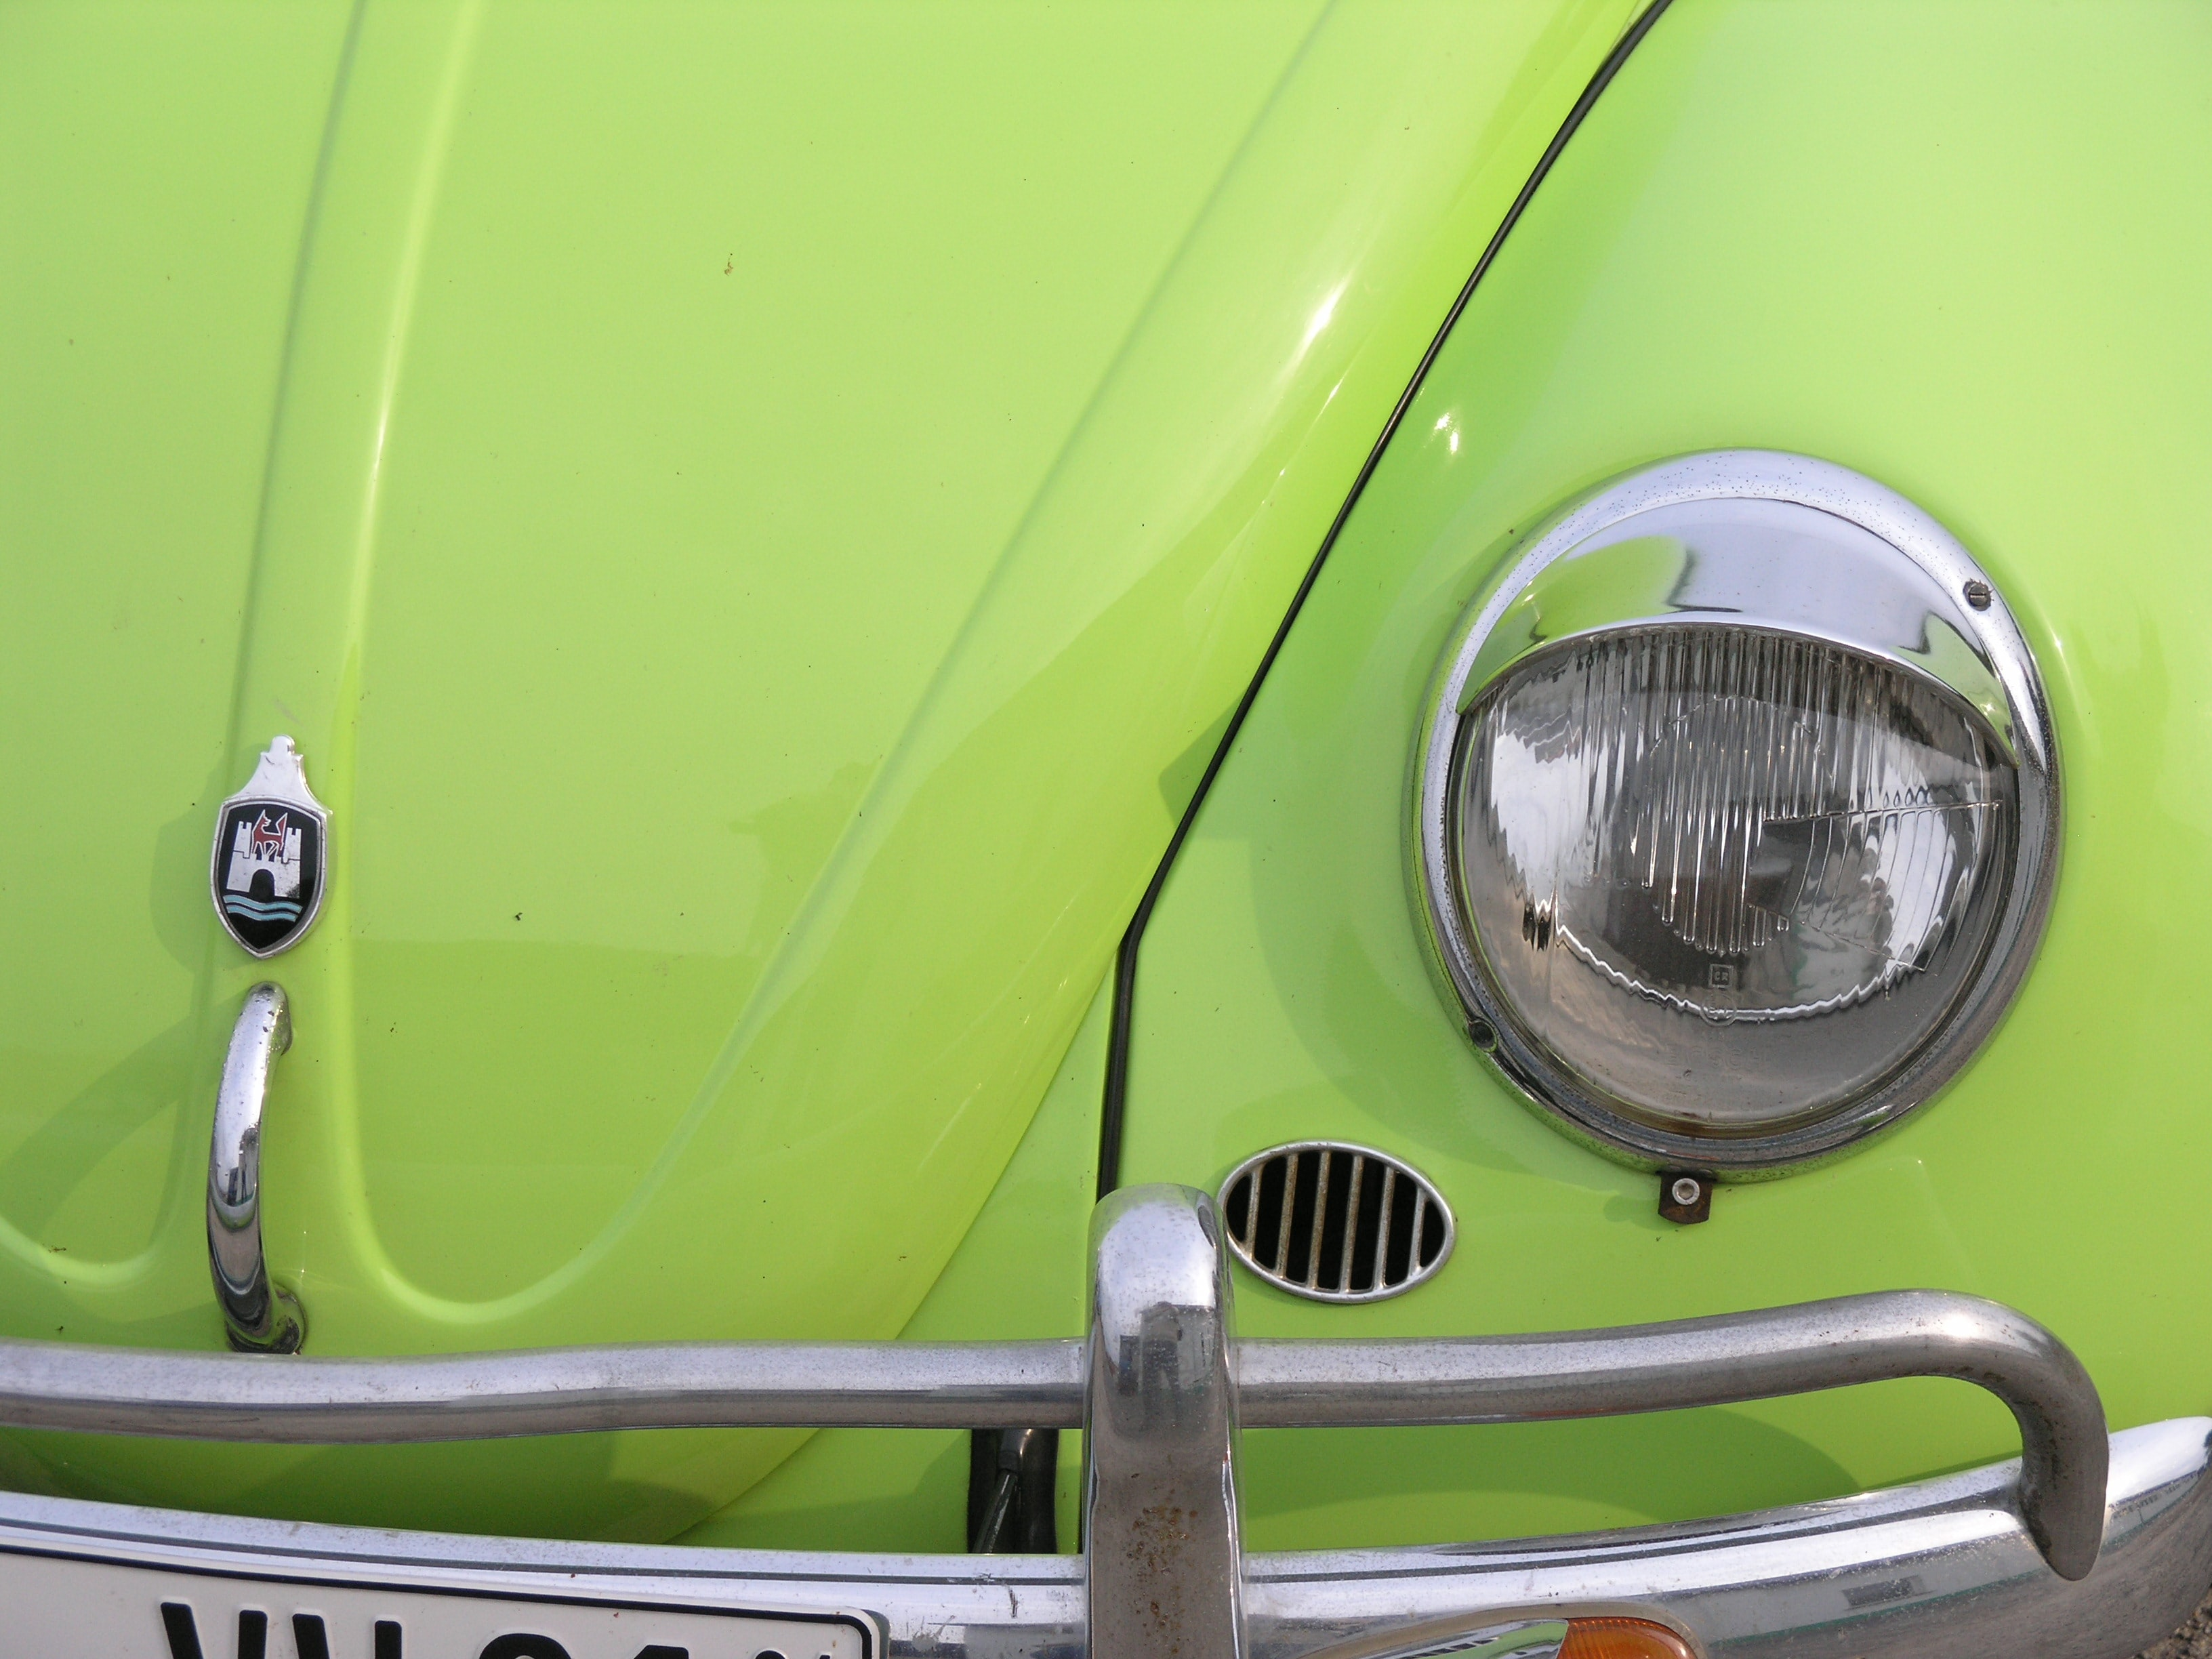 closeup photo of green Volkswagen Beetle